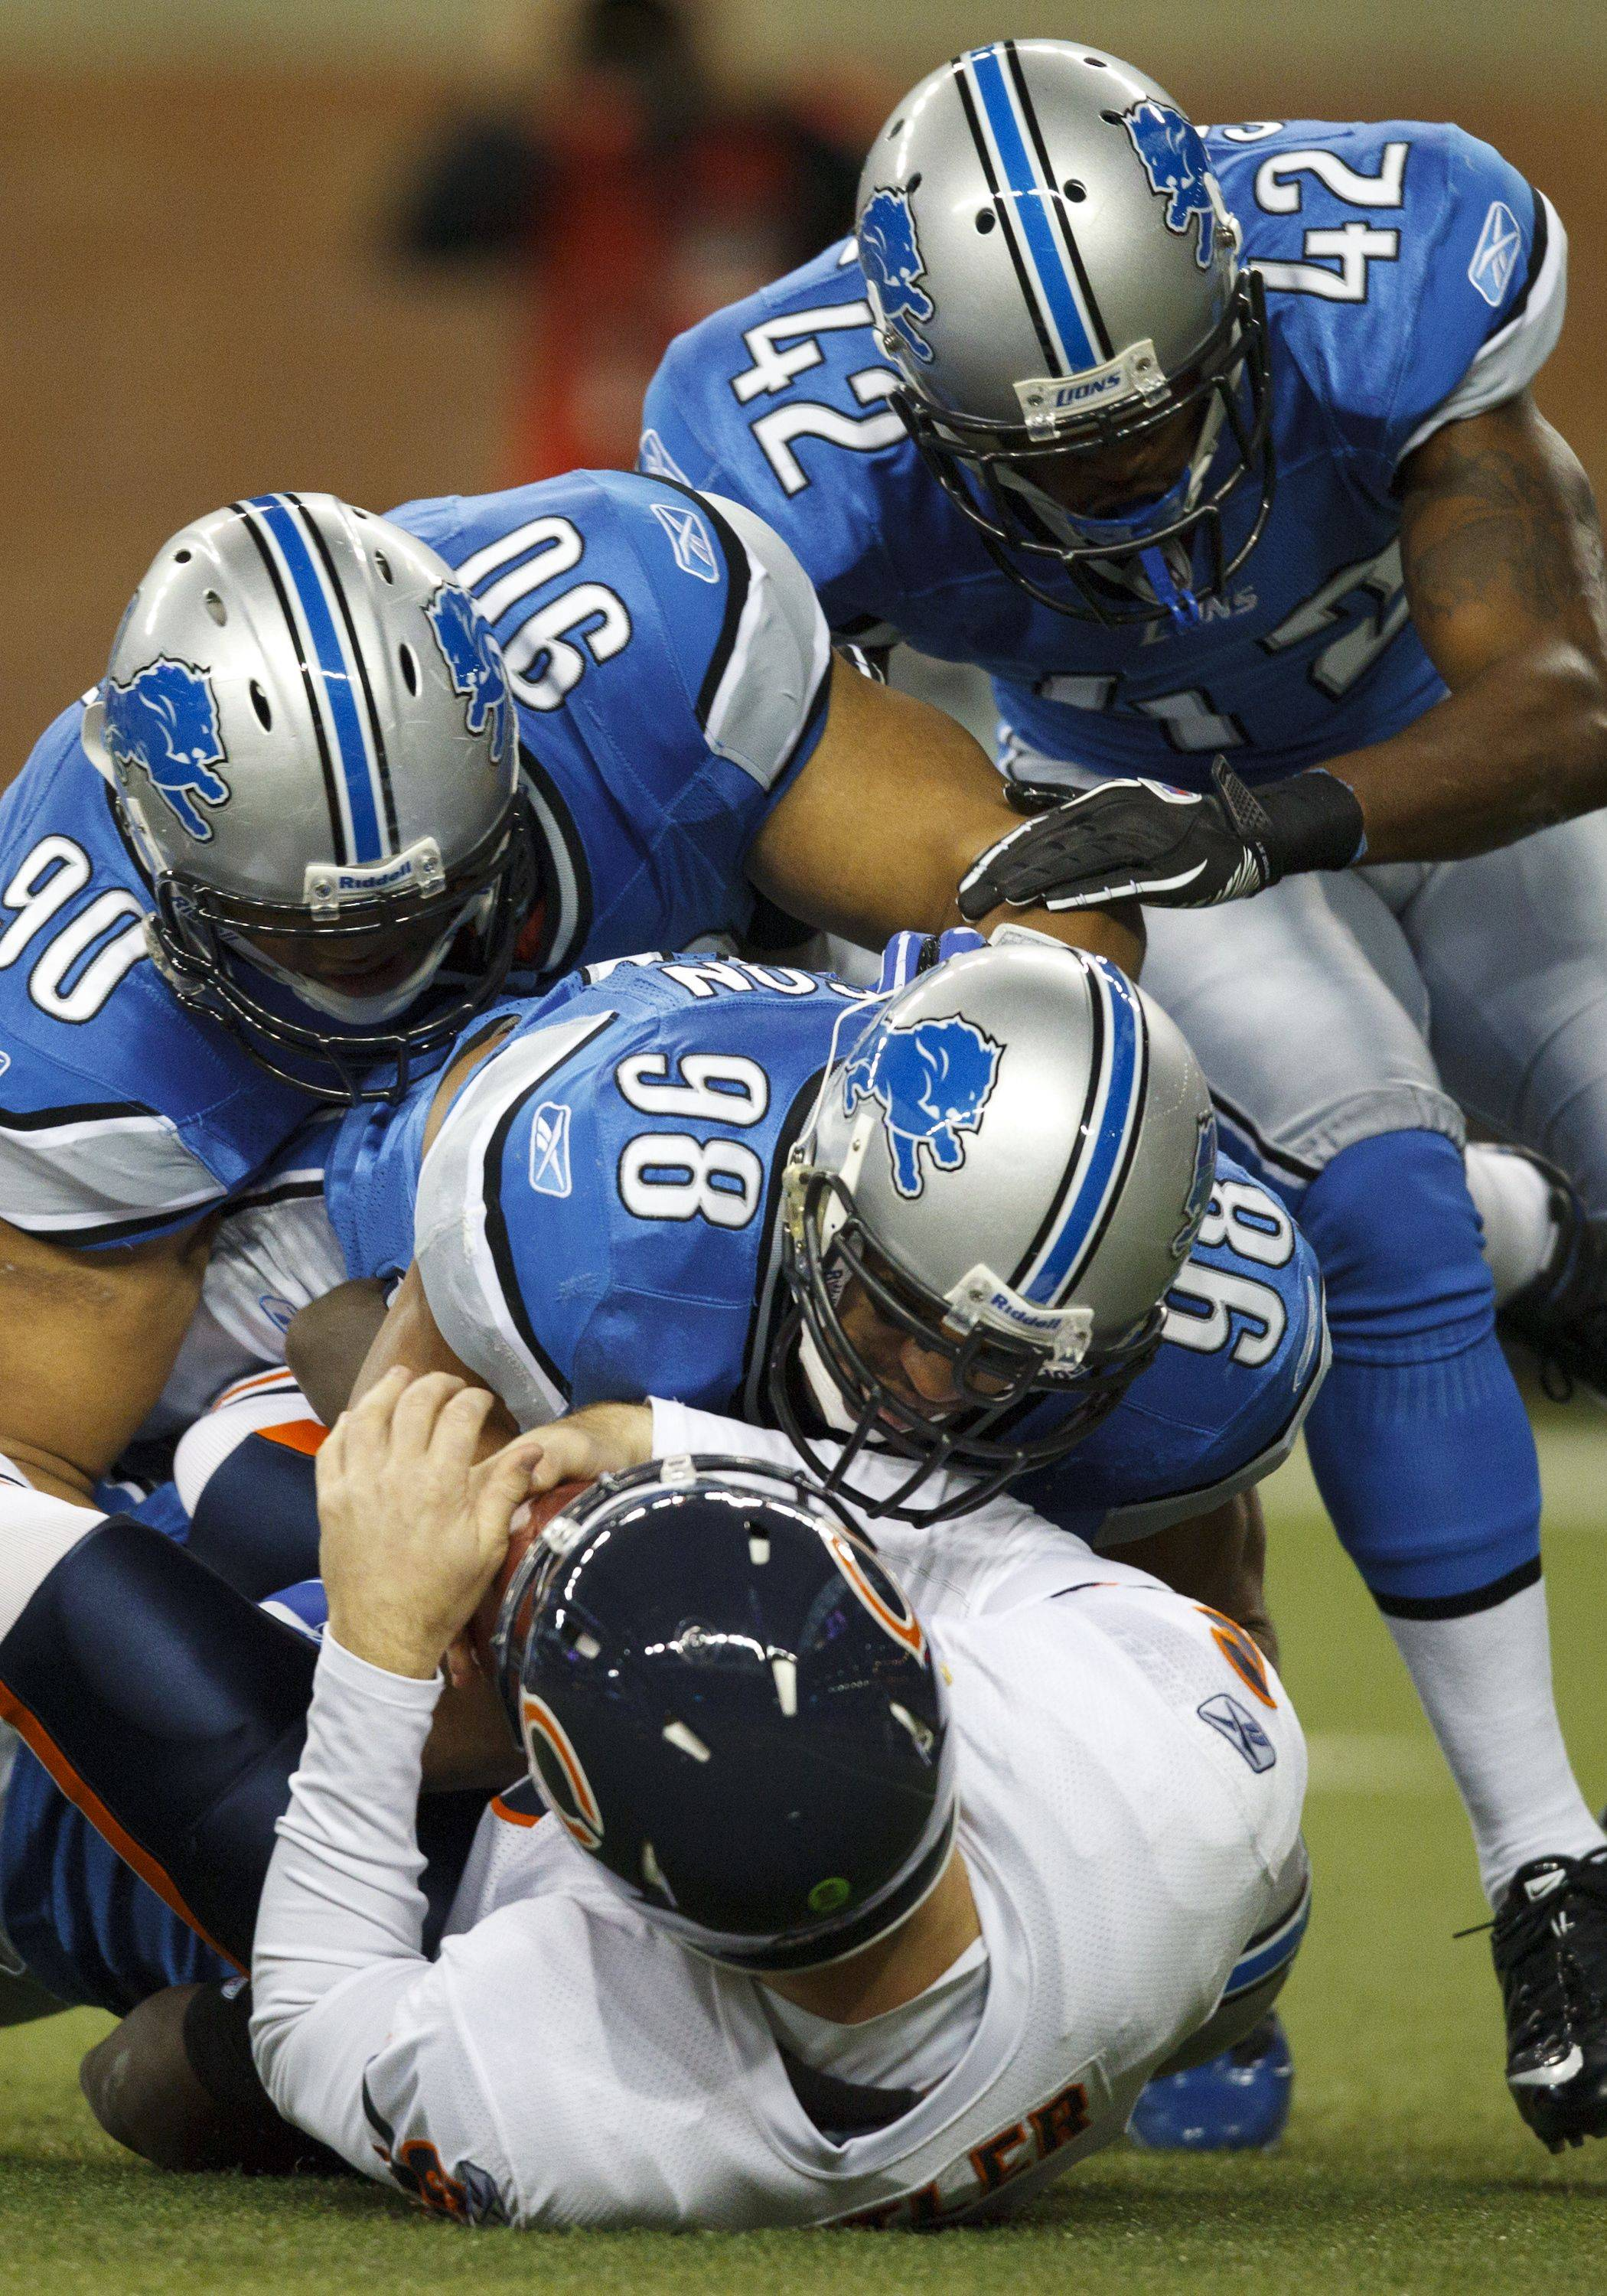 Detroit Lions defensive tackle Ndamukong Suh, Detroit Lions linebacker Julian Peterson and Detroit Lions cornerback Amari Spievey sack Chicago Bears quarterback Jay Cutler in the first half.